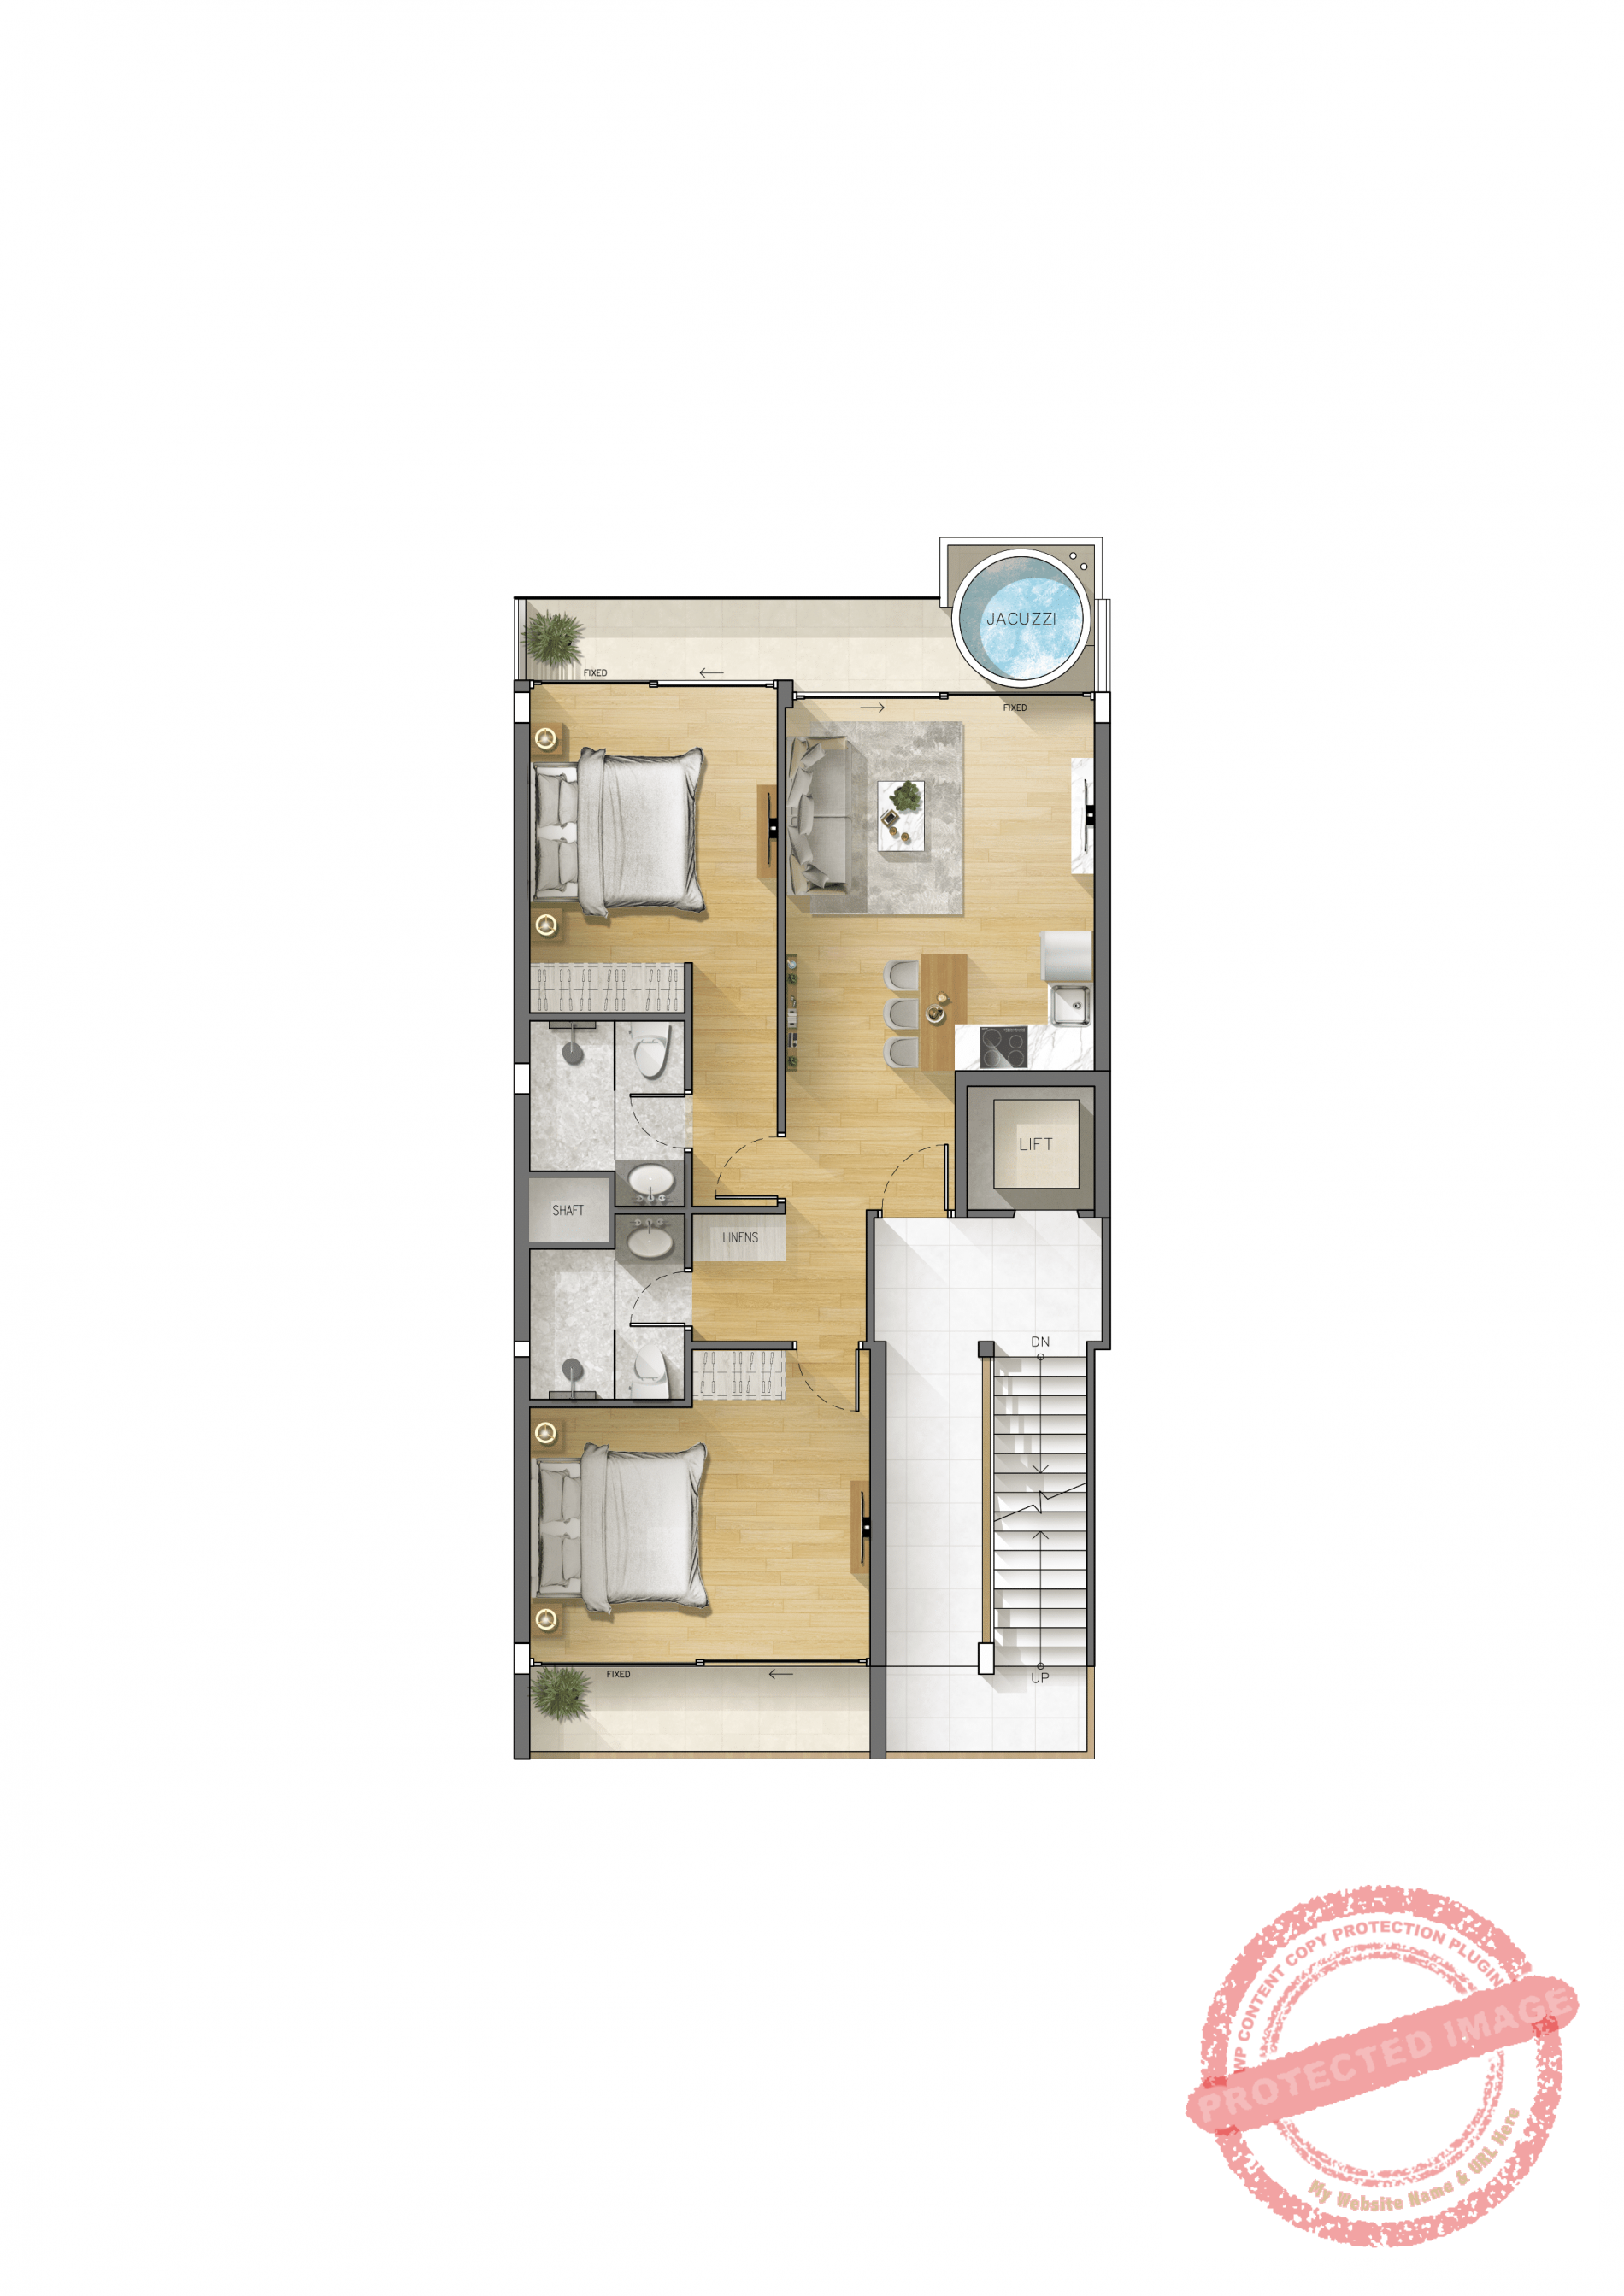 2nd floor apartment